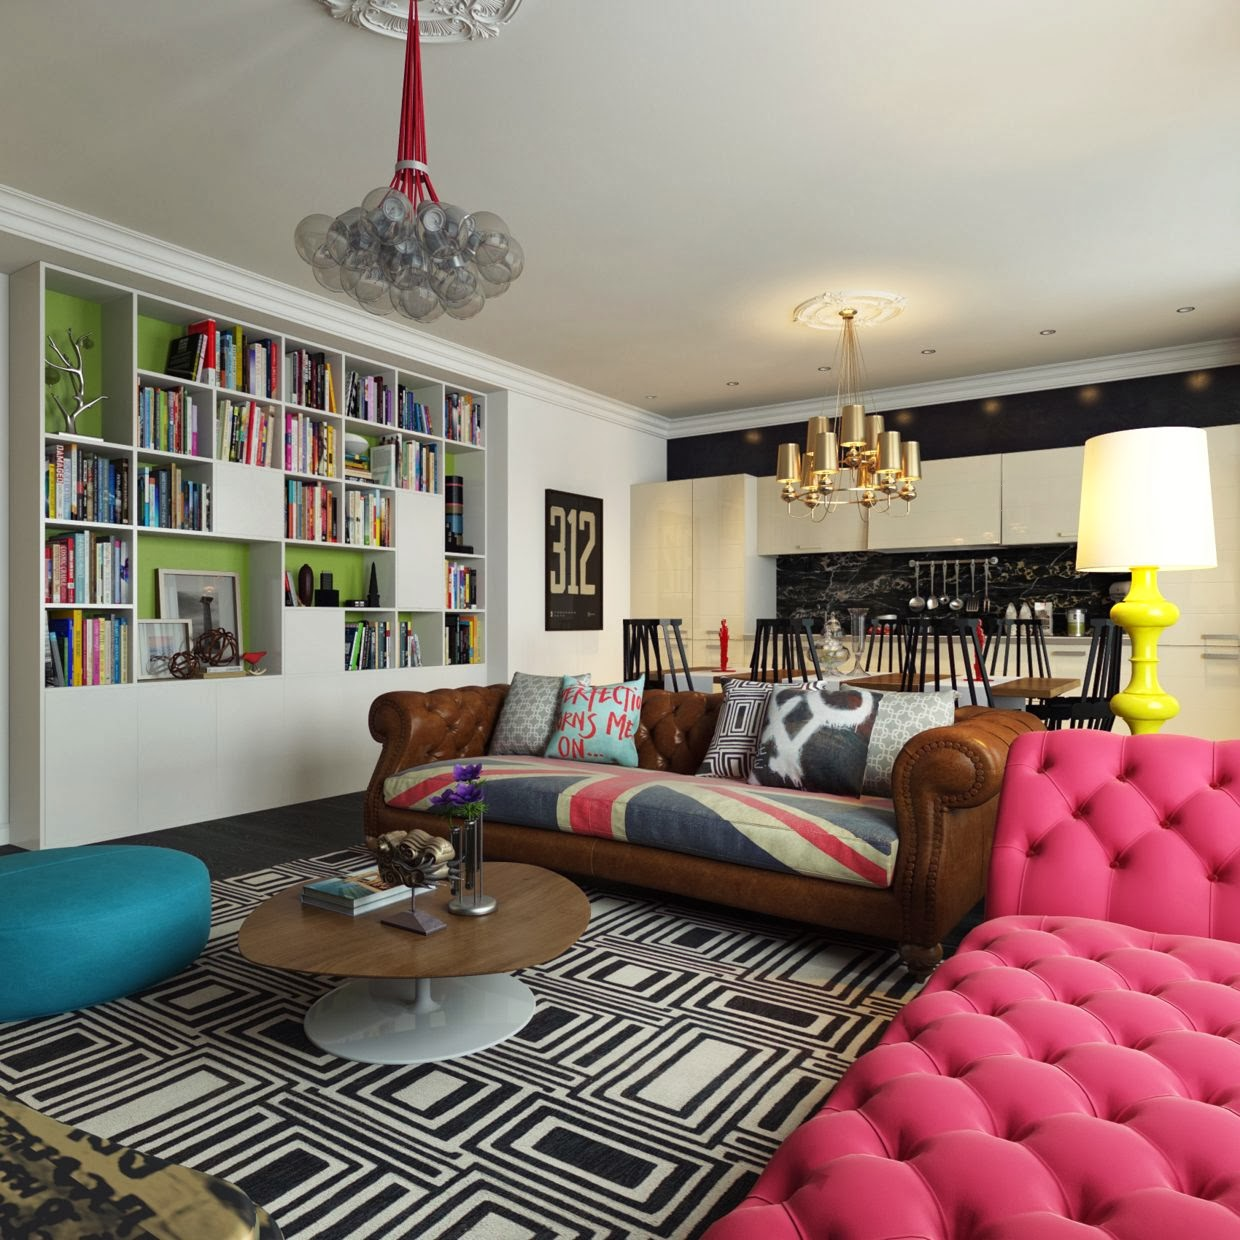 Interiornity source of interior design ideas for Funky decorations for the home